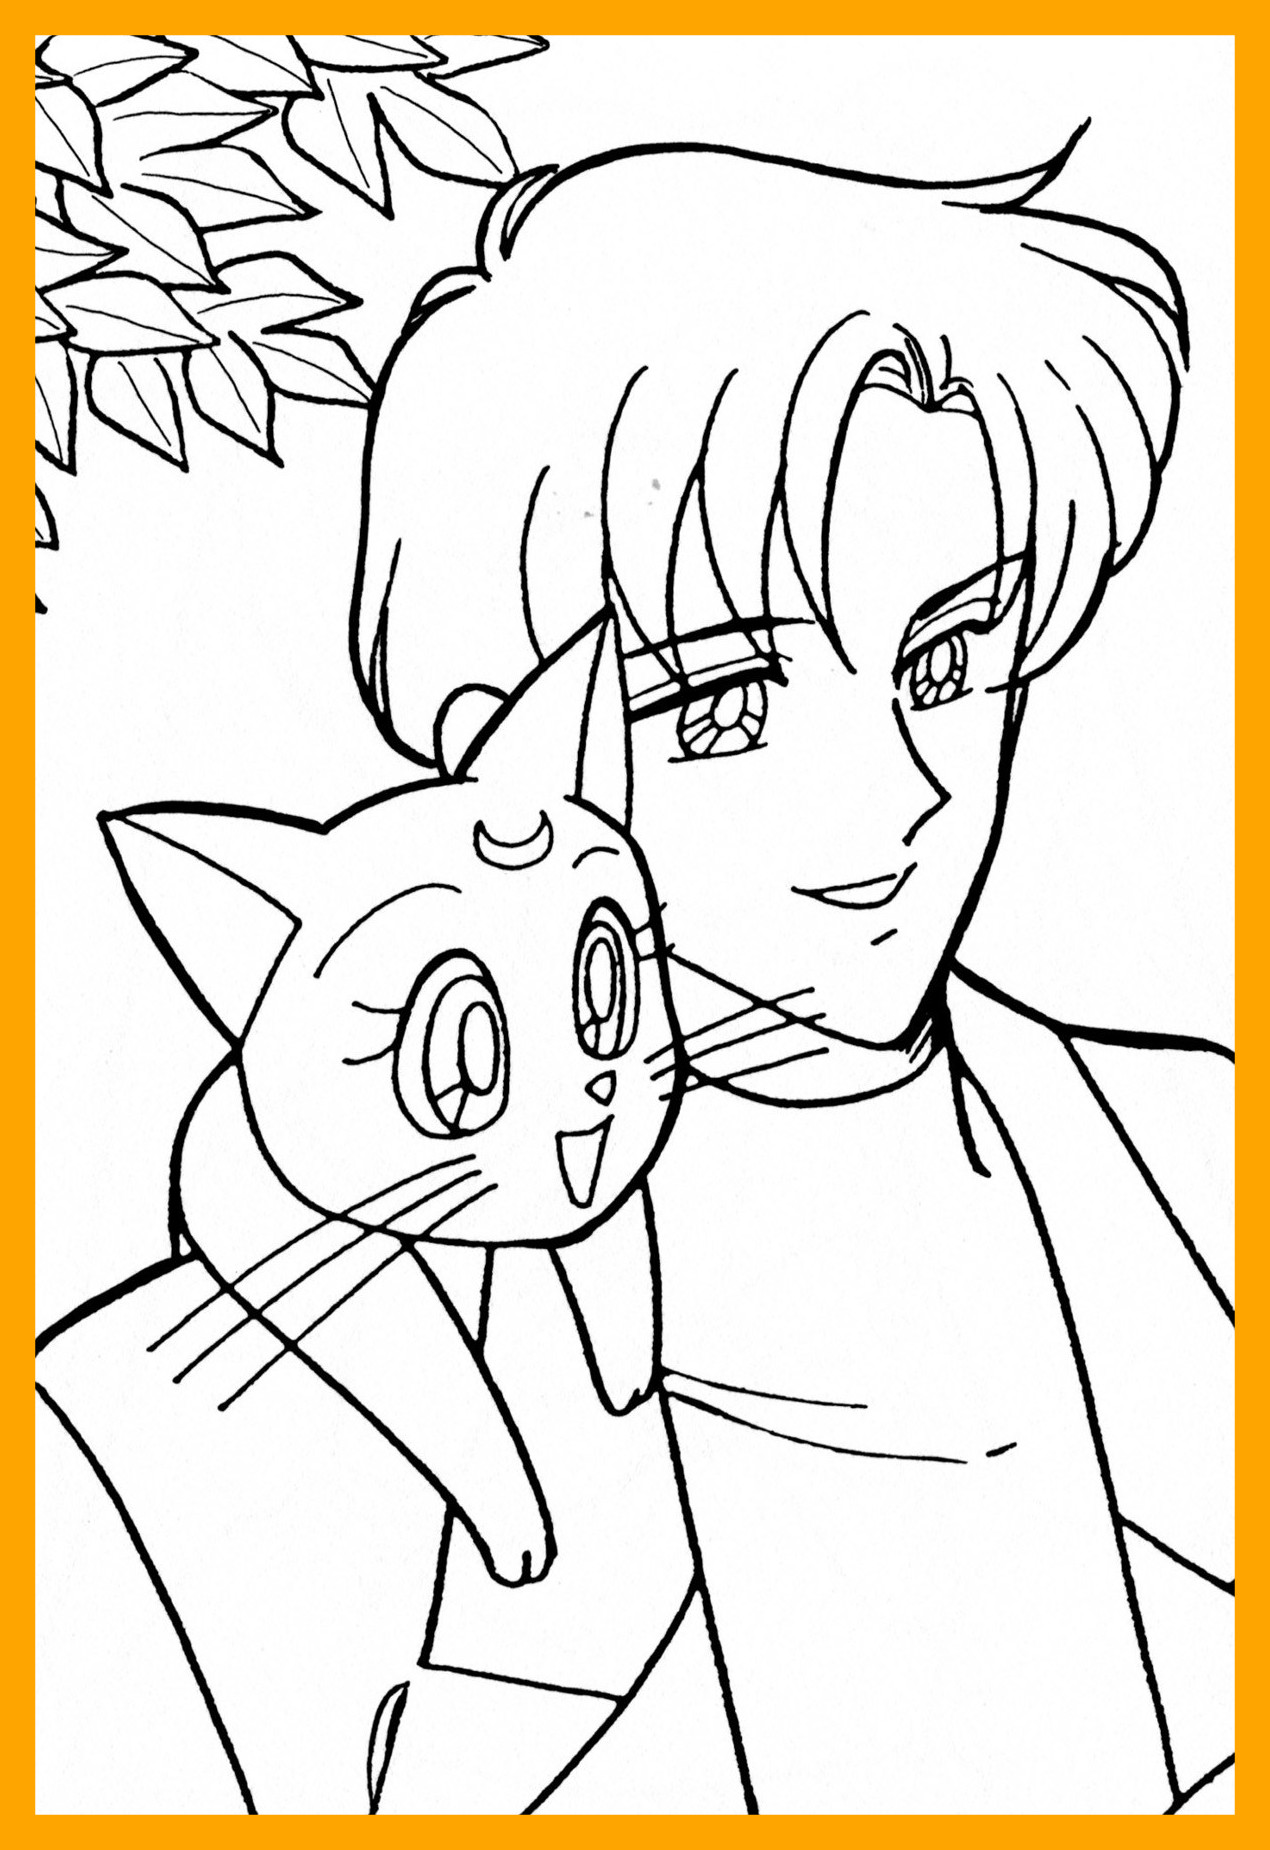 tuxedo coloring pages - photo#23